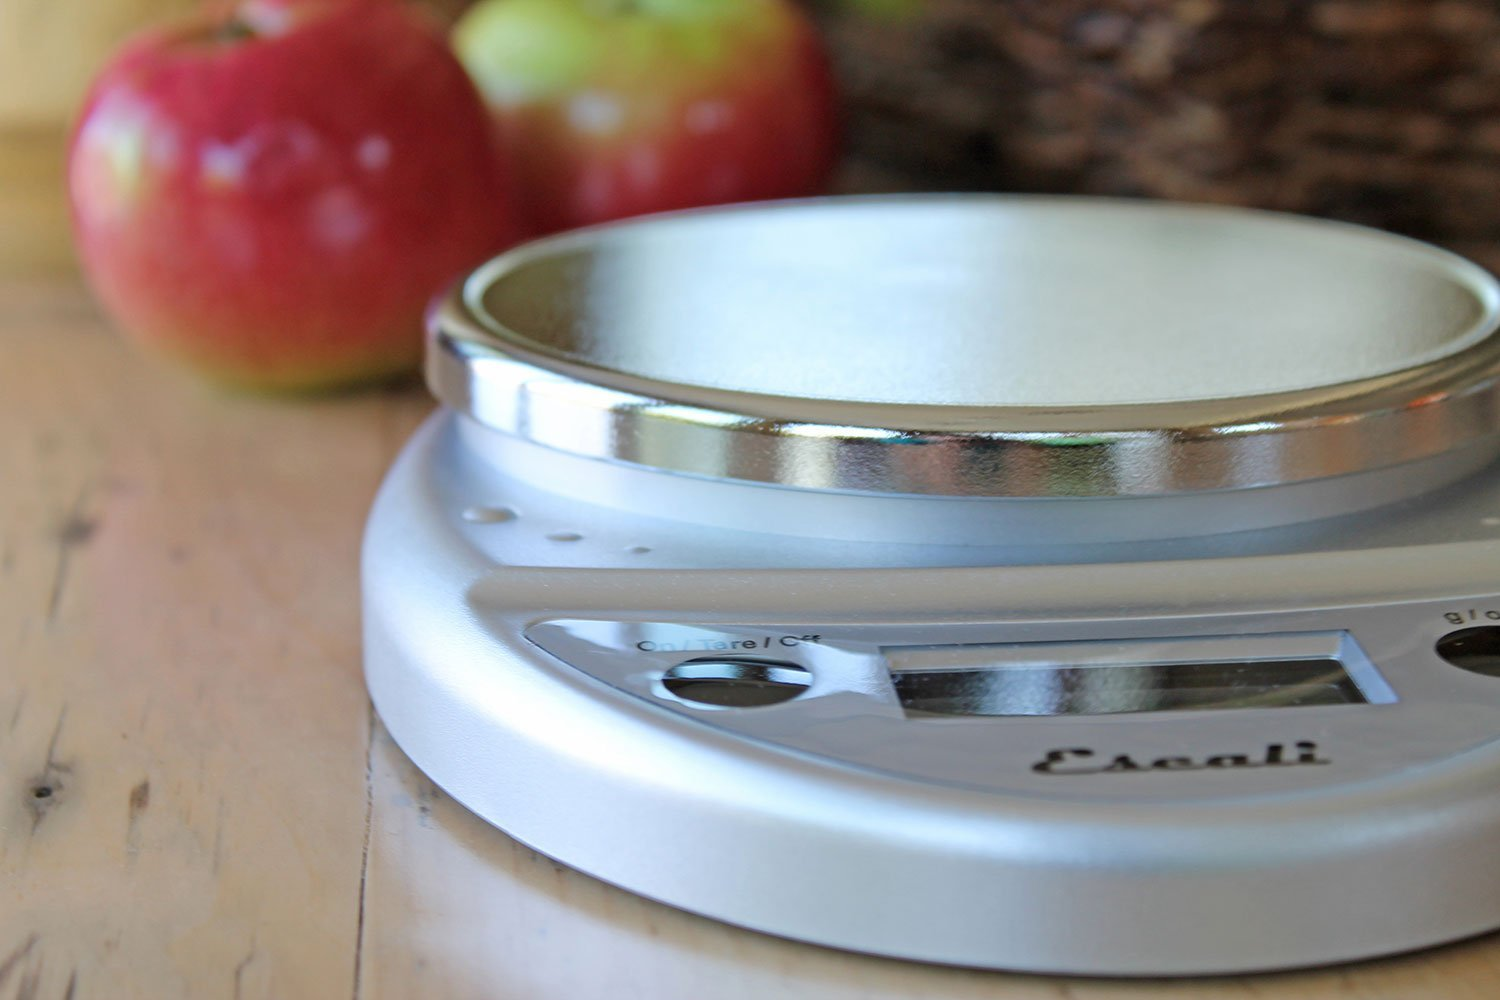 Primo Digital Kitchen Scale